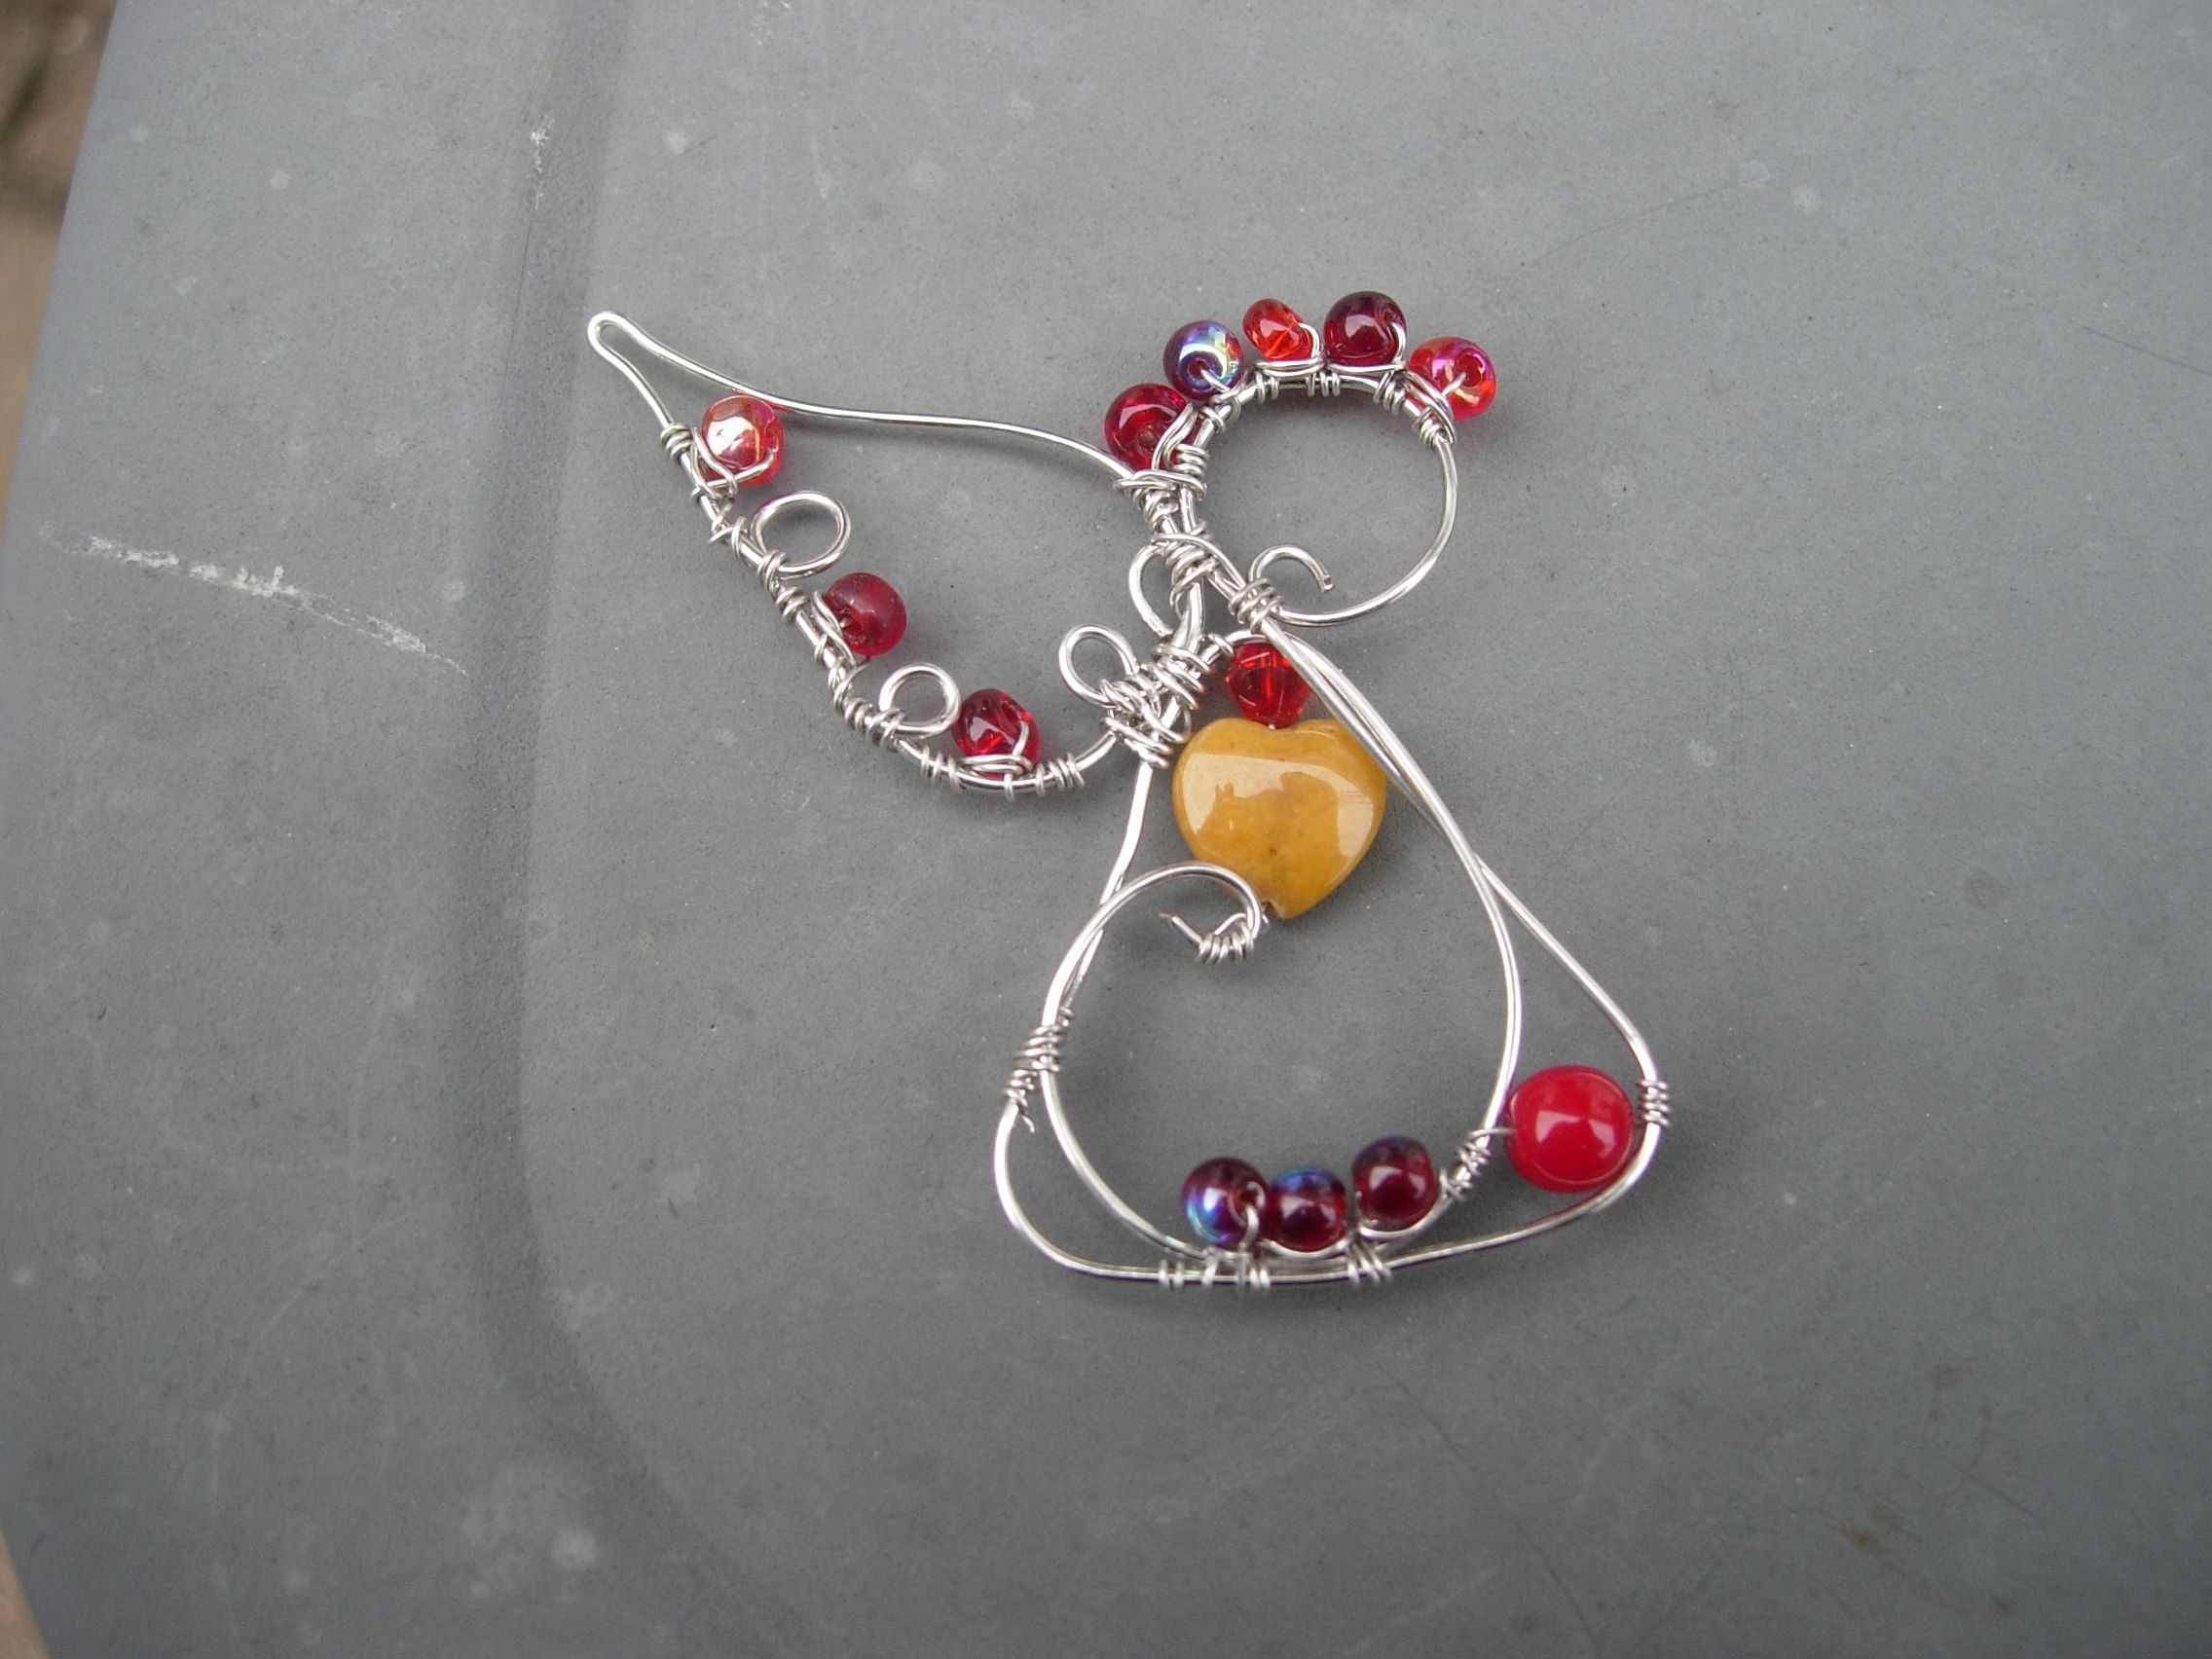 New wire angel design | Wire jewelry designs, Angel and Crafts